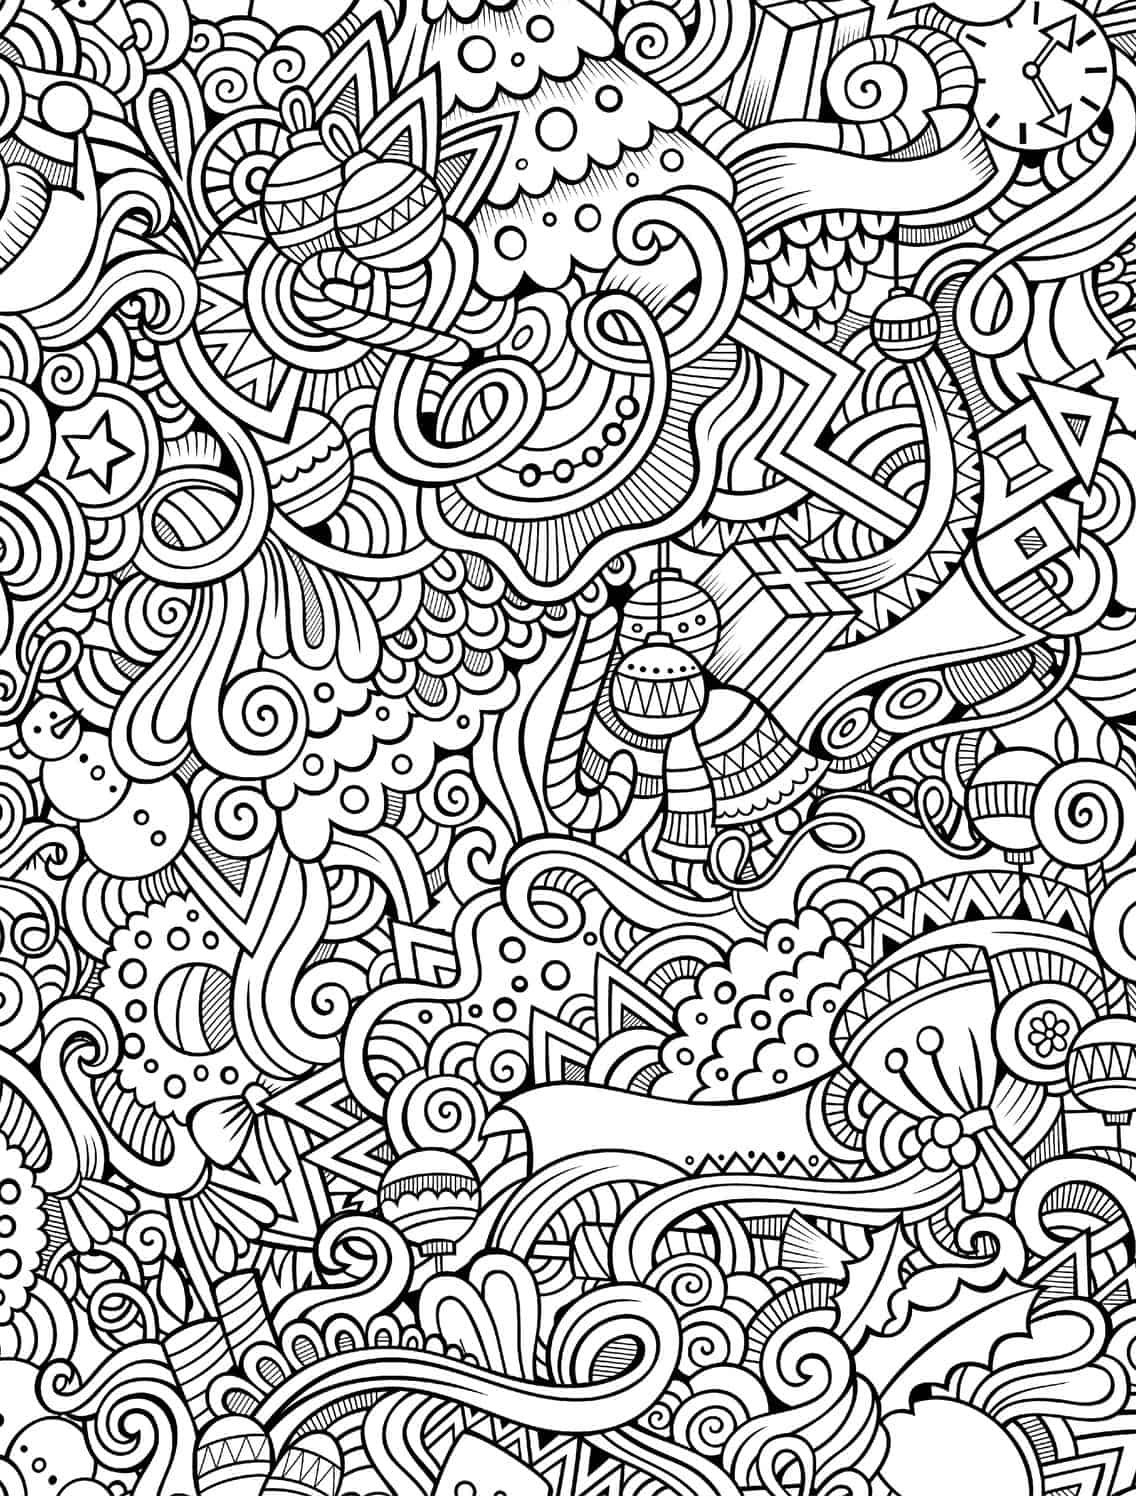 Colouring in for adults why - Jpeg For All Here